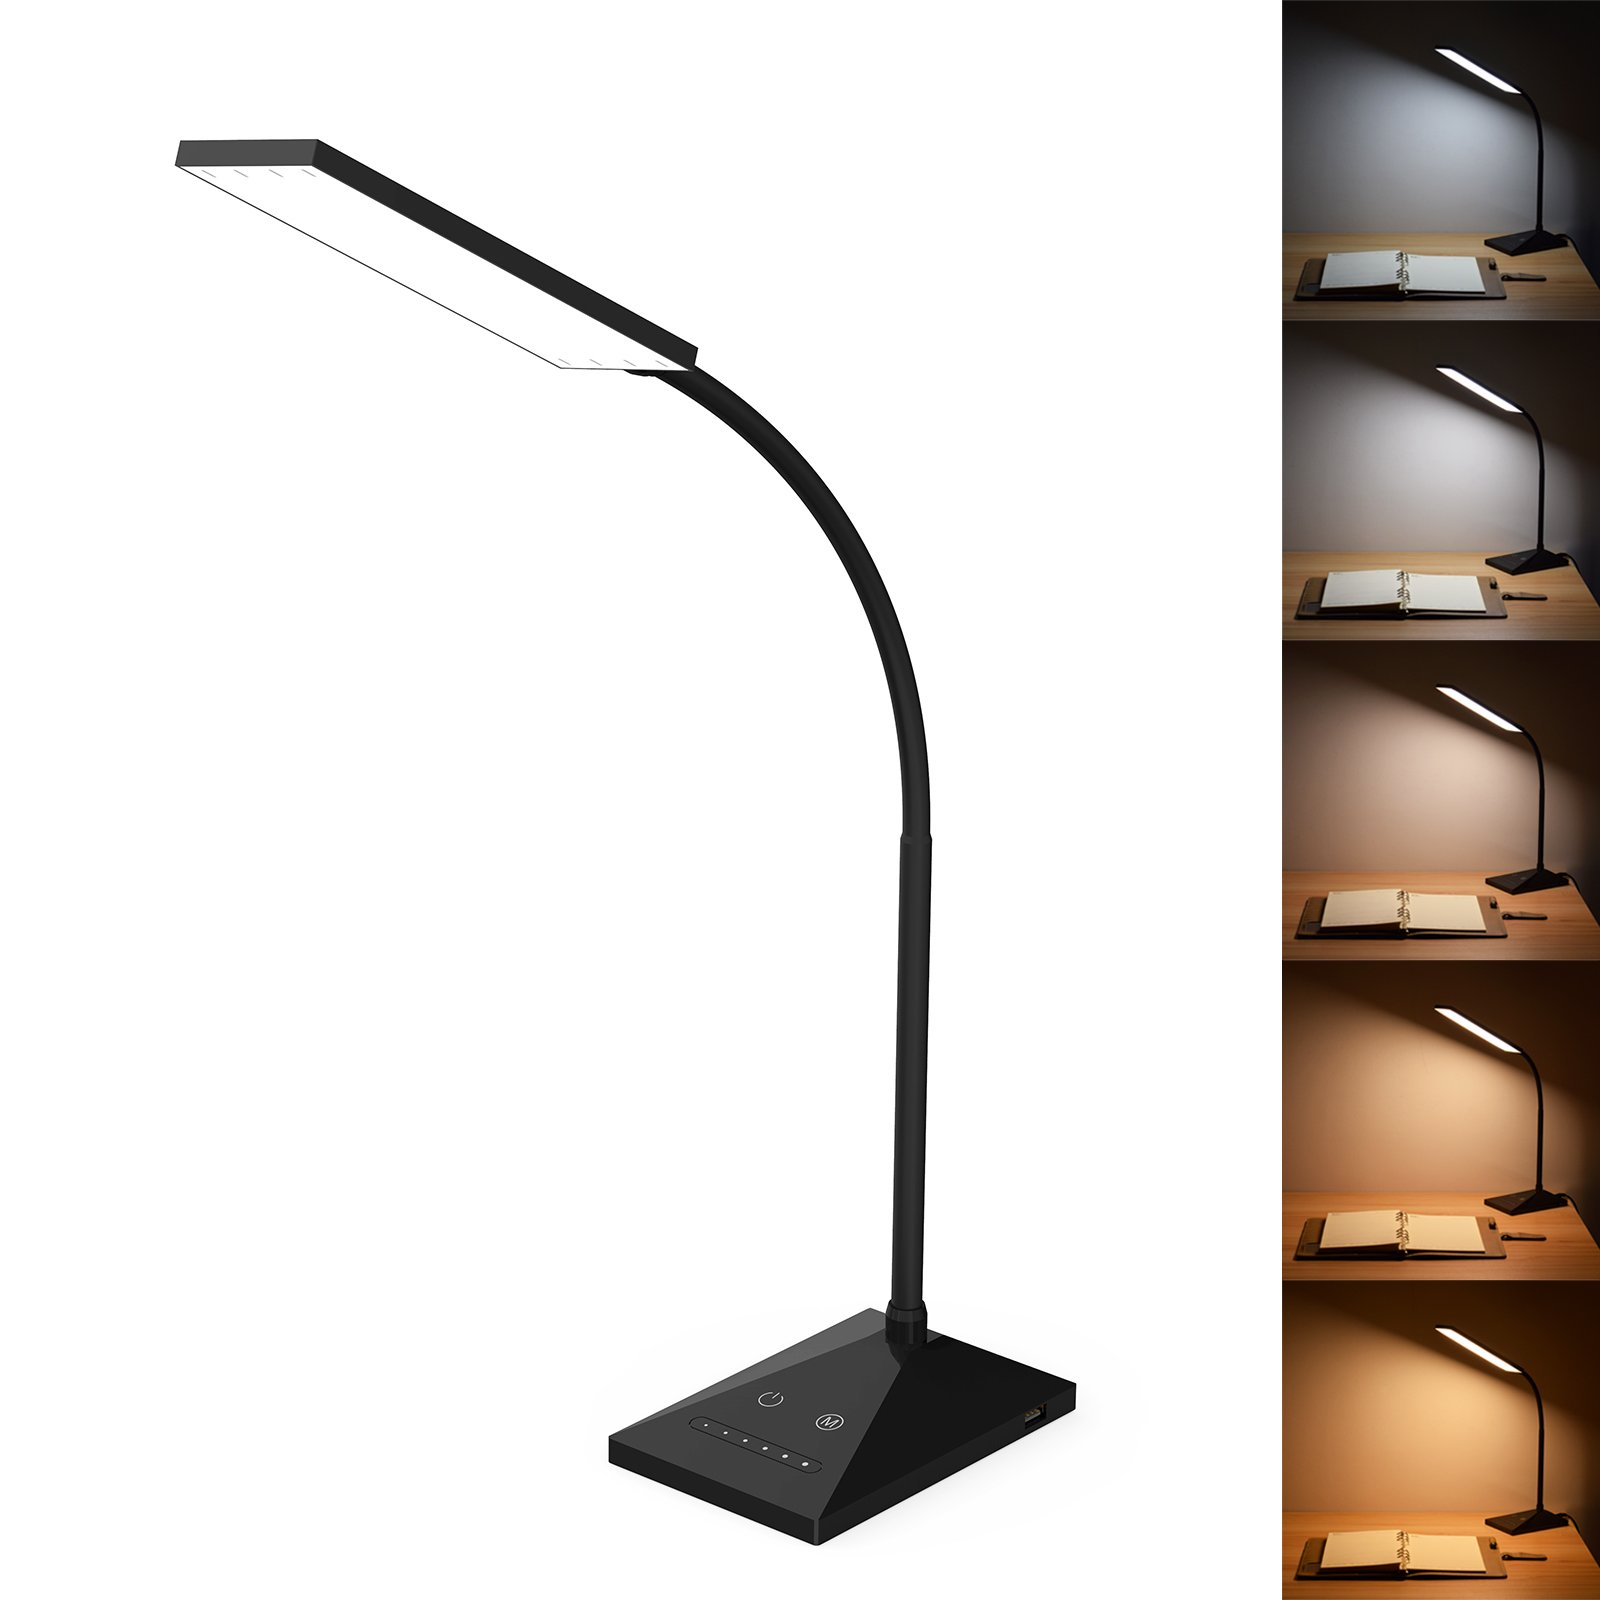 RAOYI LED Desk Lamp Eye-Caring Table Lamps, Dimmable Office Lamp with USB Charging Port, Touch Control Sensitive, 5 Color Modes, Black, 12W